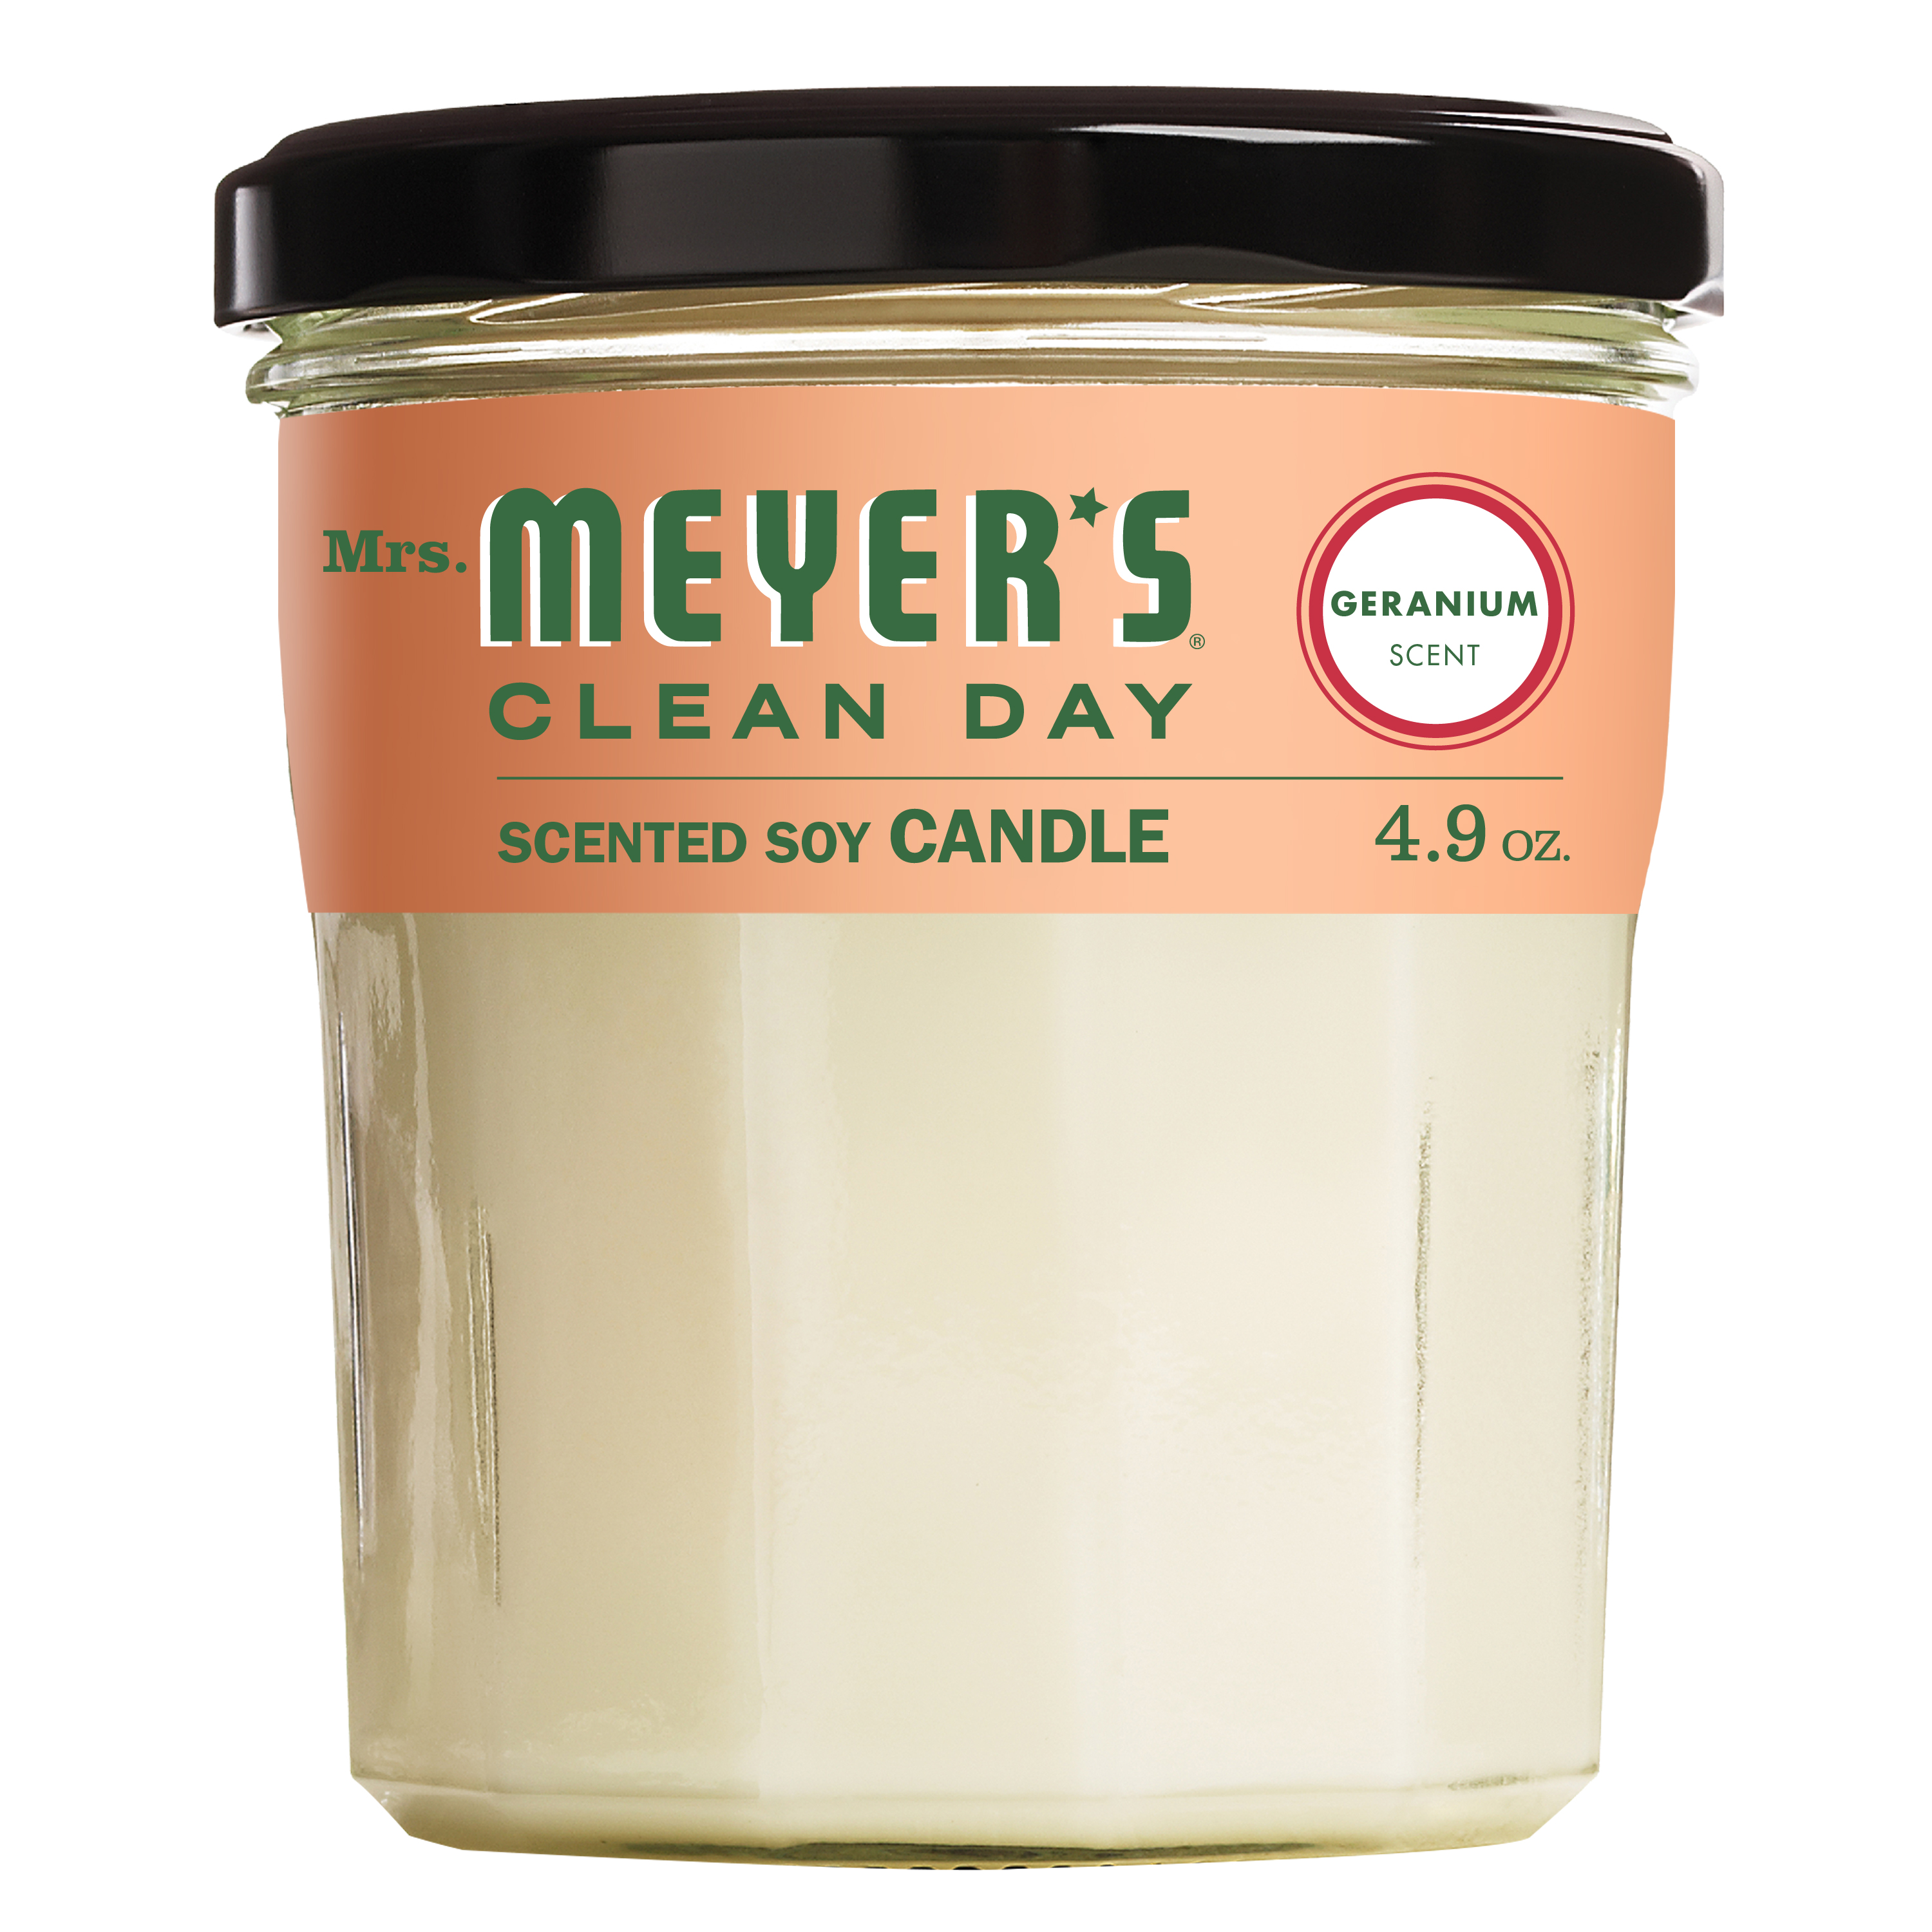 Mrs. Meyer's Clean Day Scented Soy Candle, Geranium, Candle, 4.9 ounce